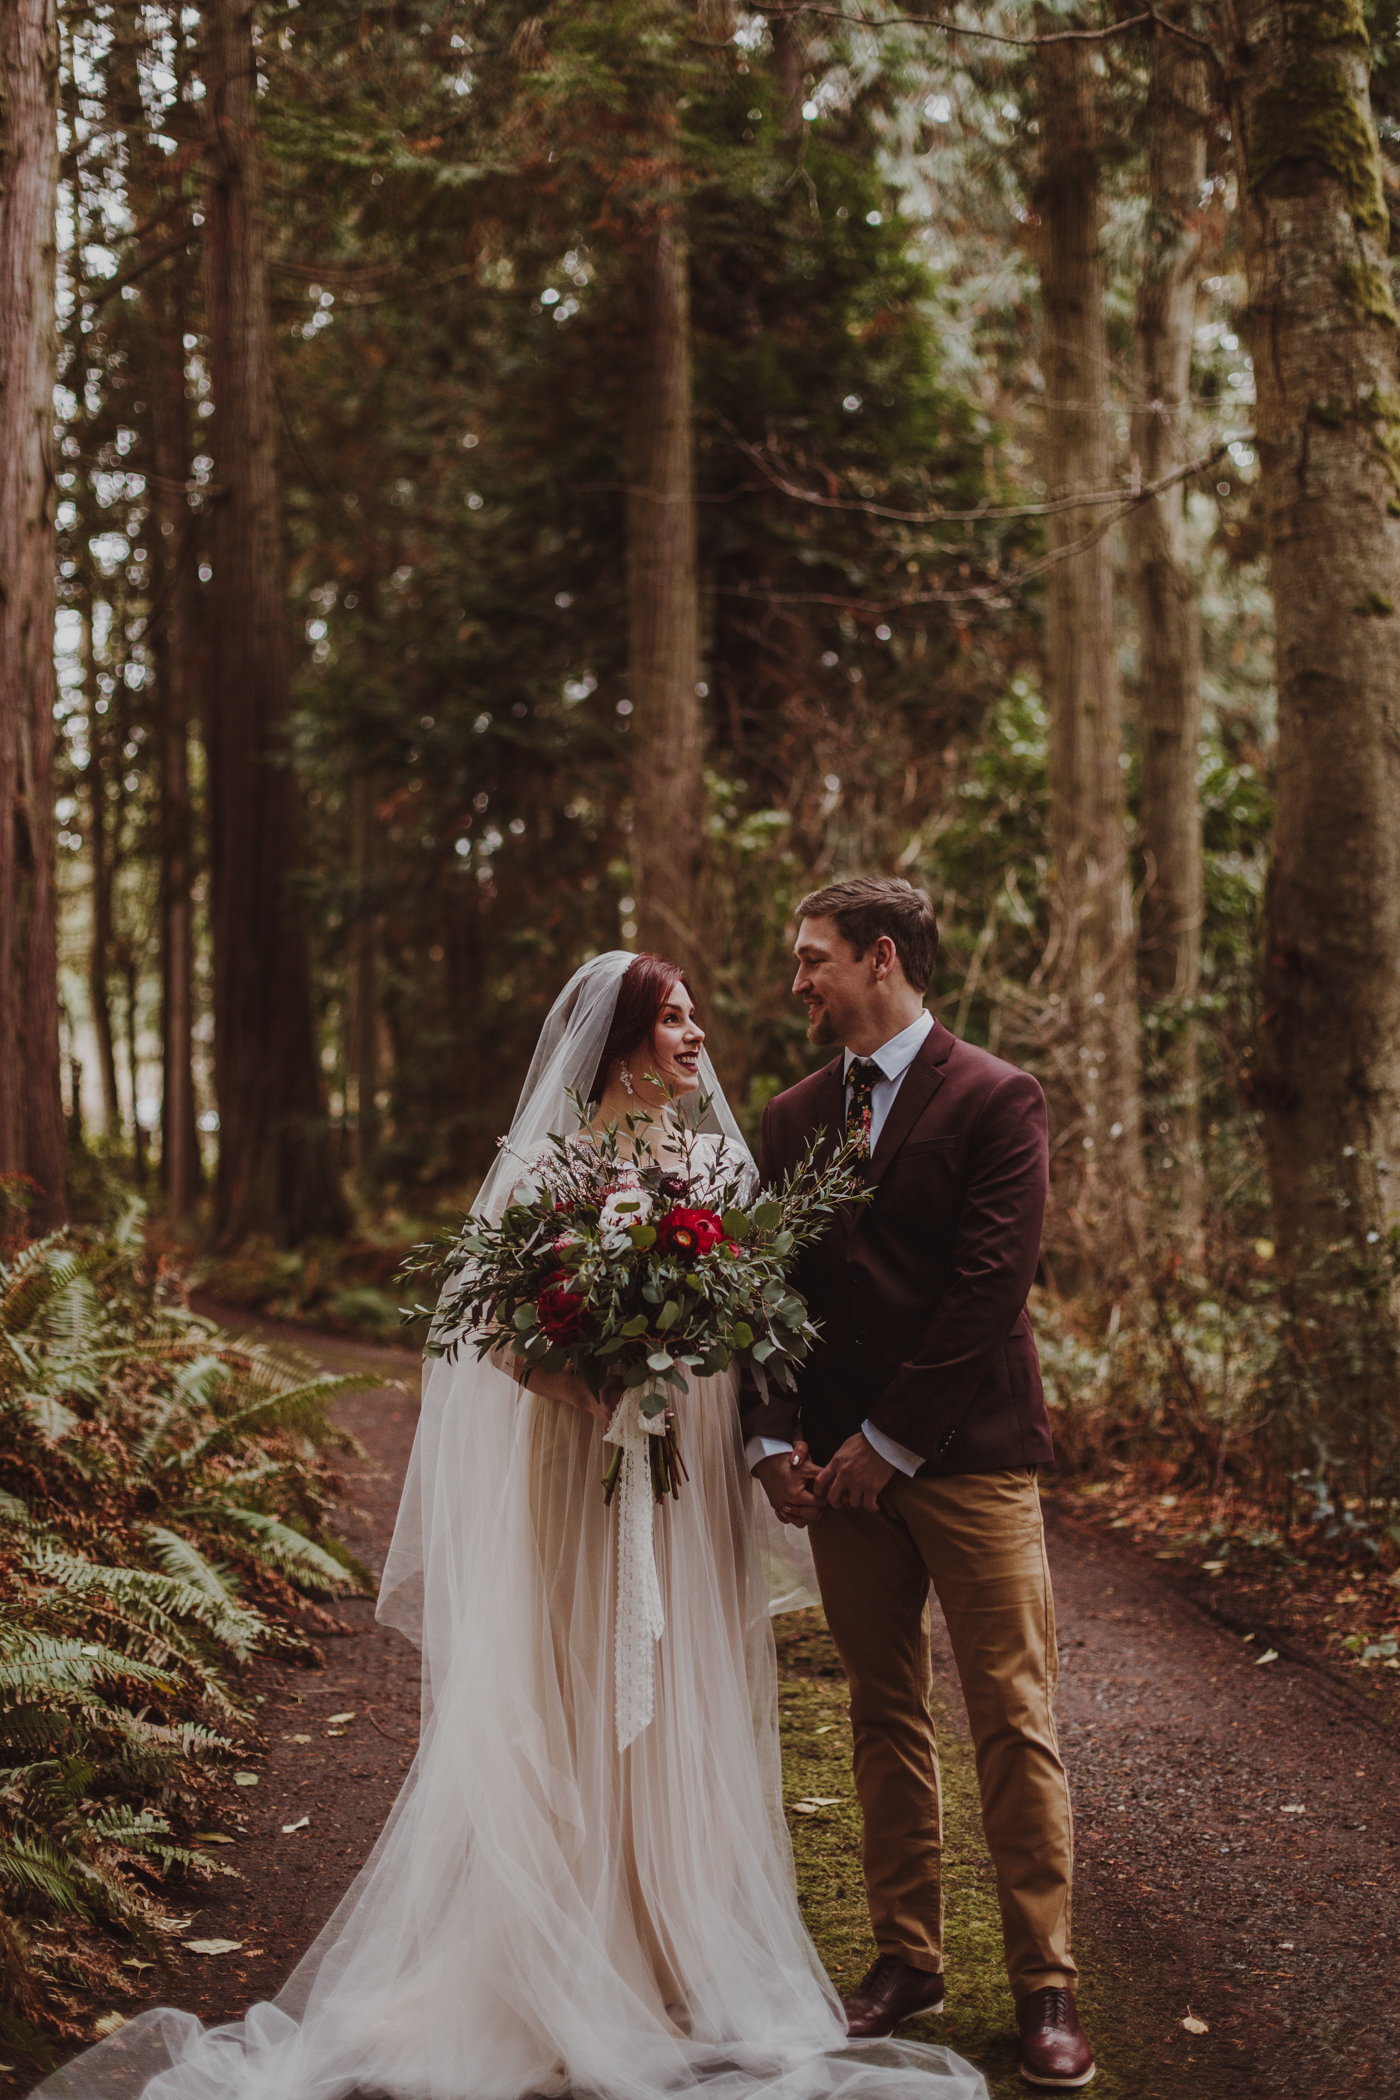 Olympic Peninsula Elopement-LizMorrow-36.jpg